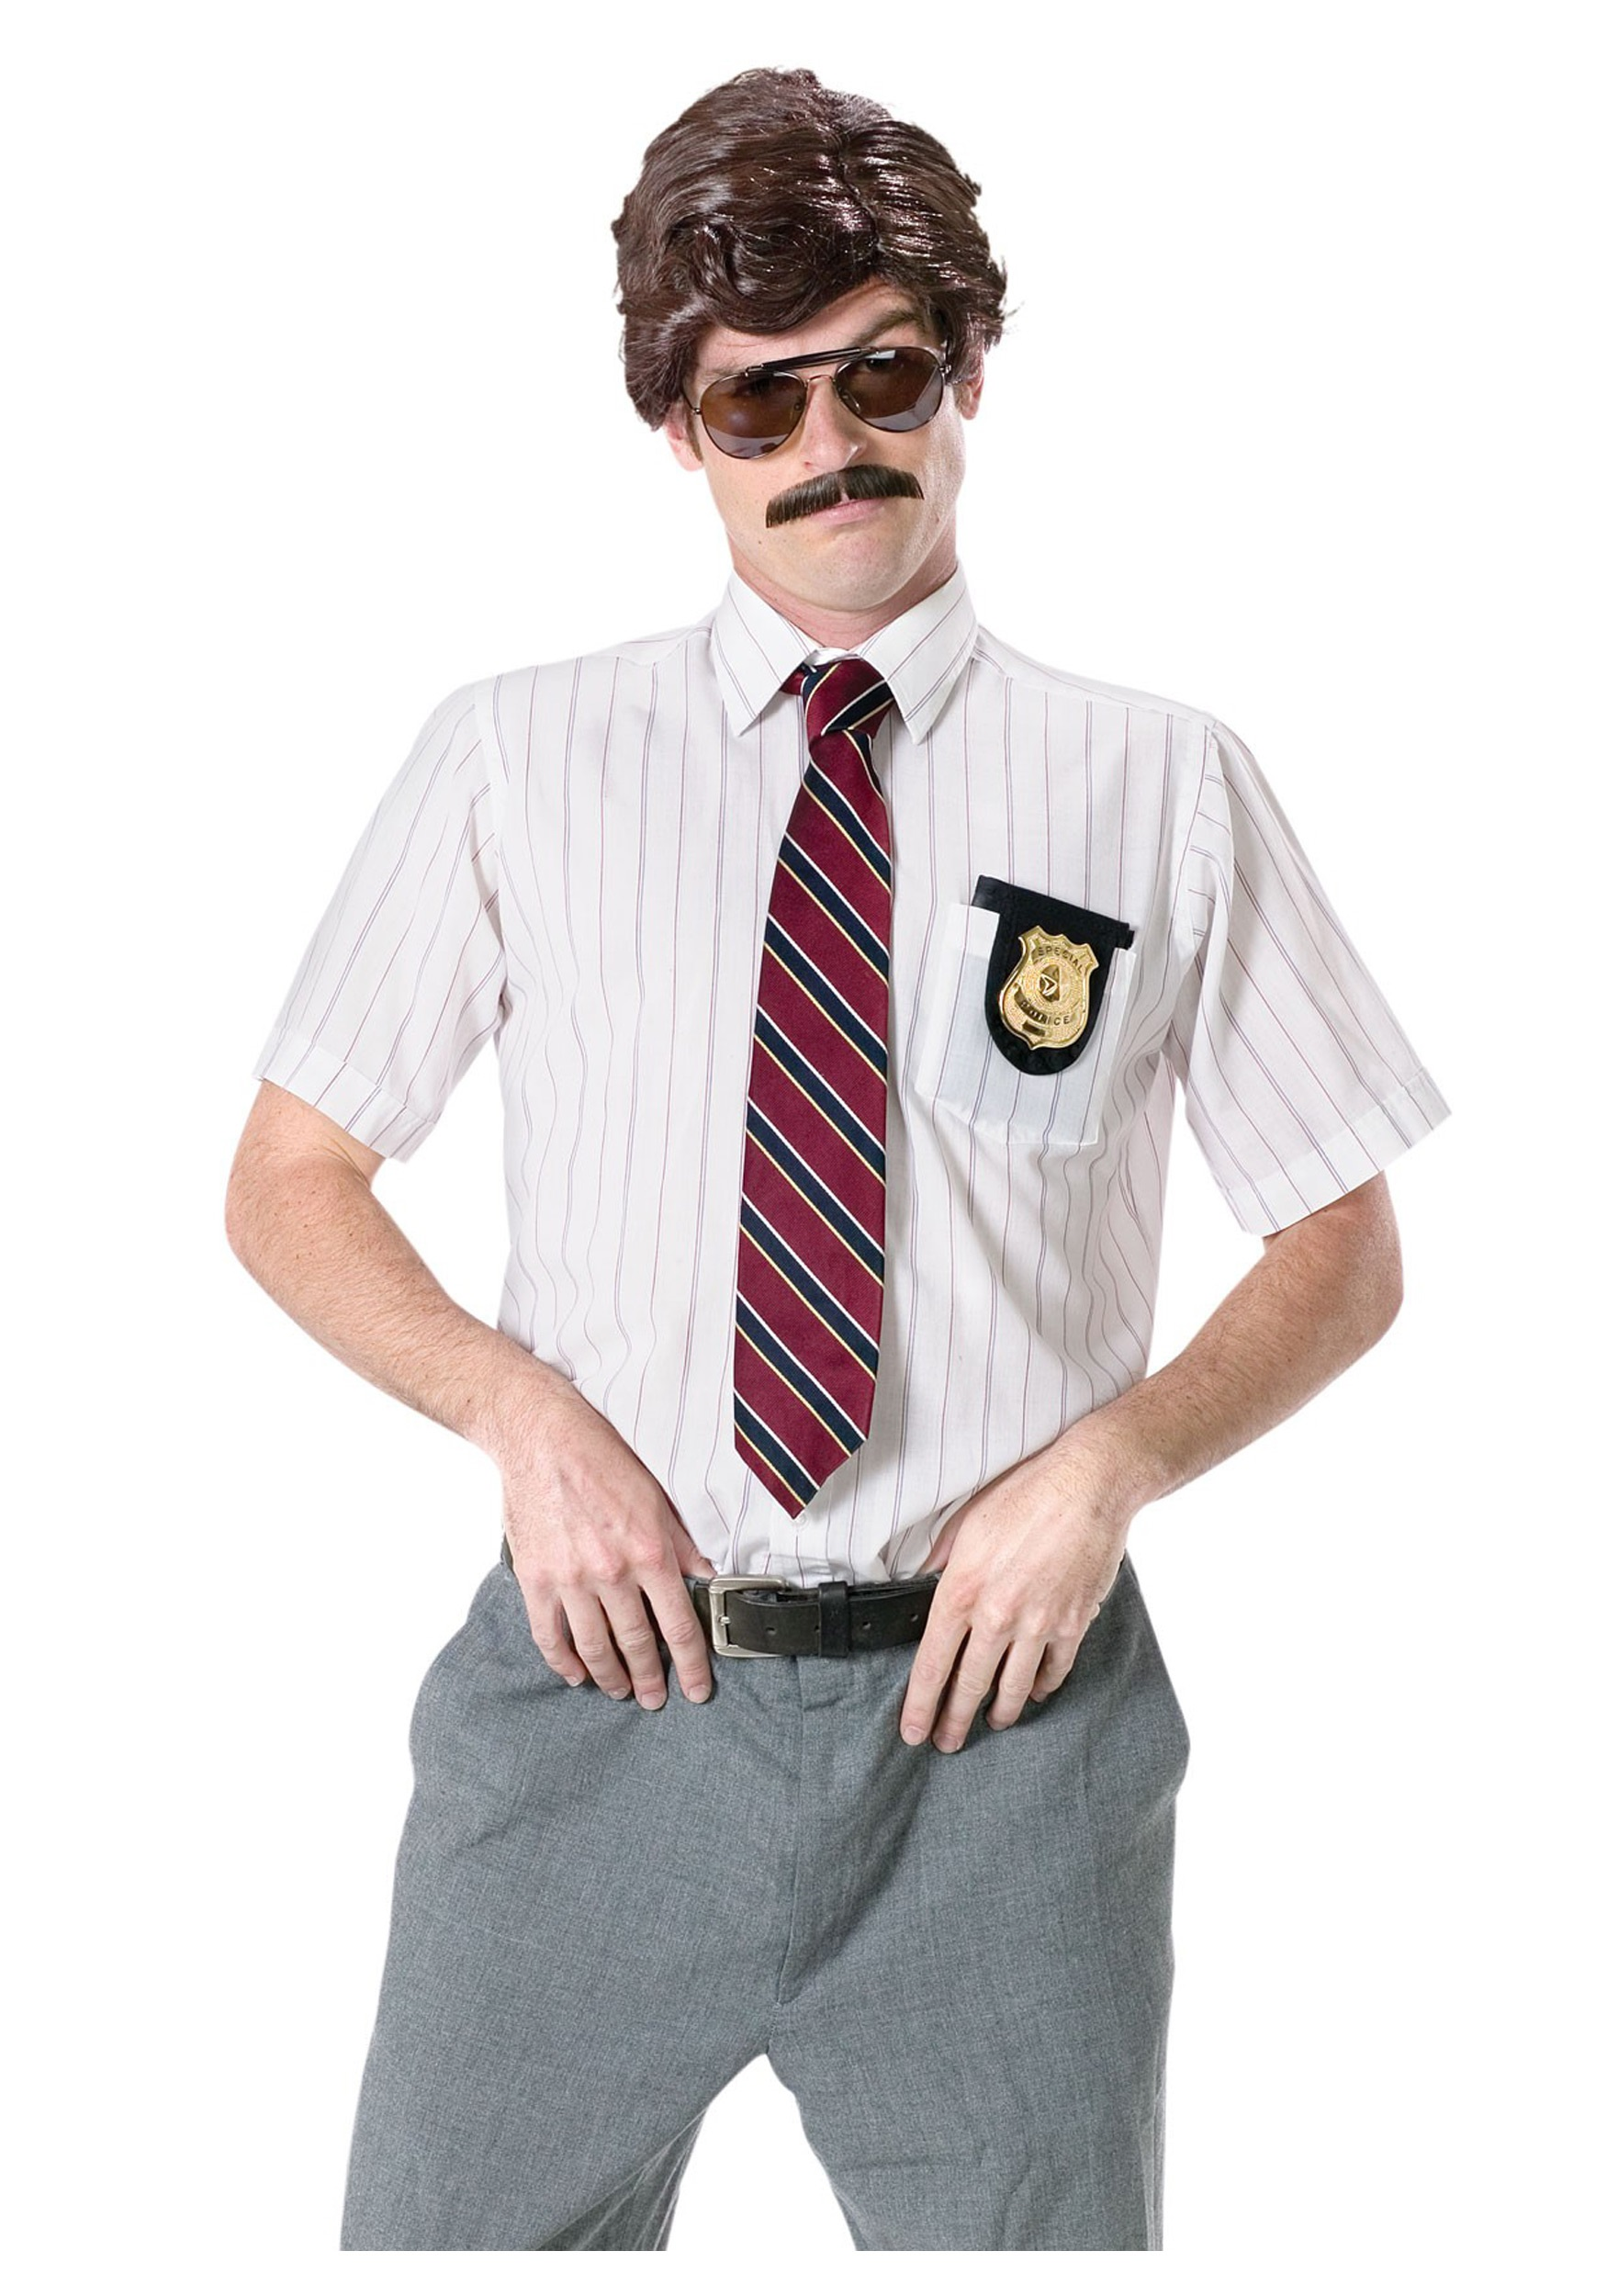 70s Private Eye Costume Kit  sc 1 st  Halloween Costume Ideas & 70s Detective Costumes Kit - Adult 70s Halloween Detective Costume